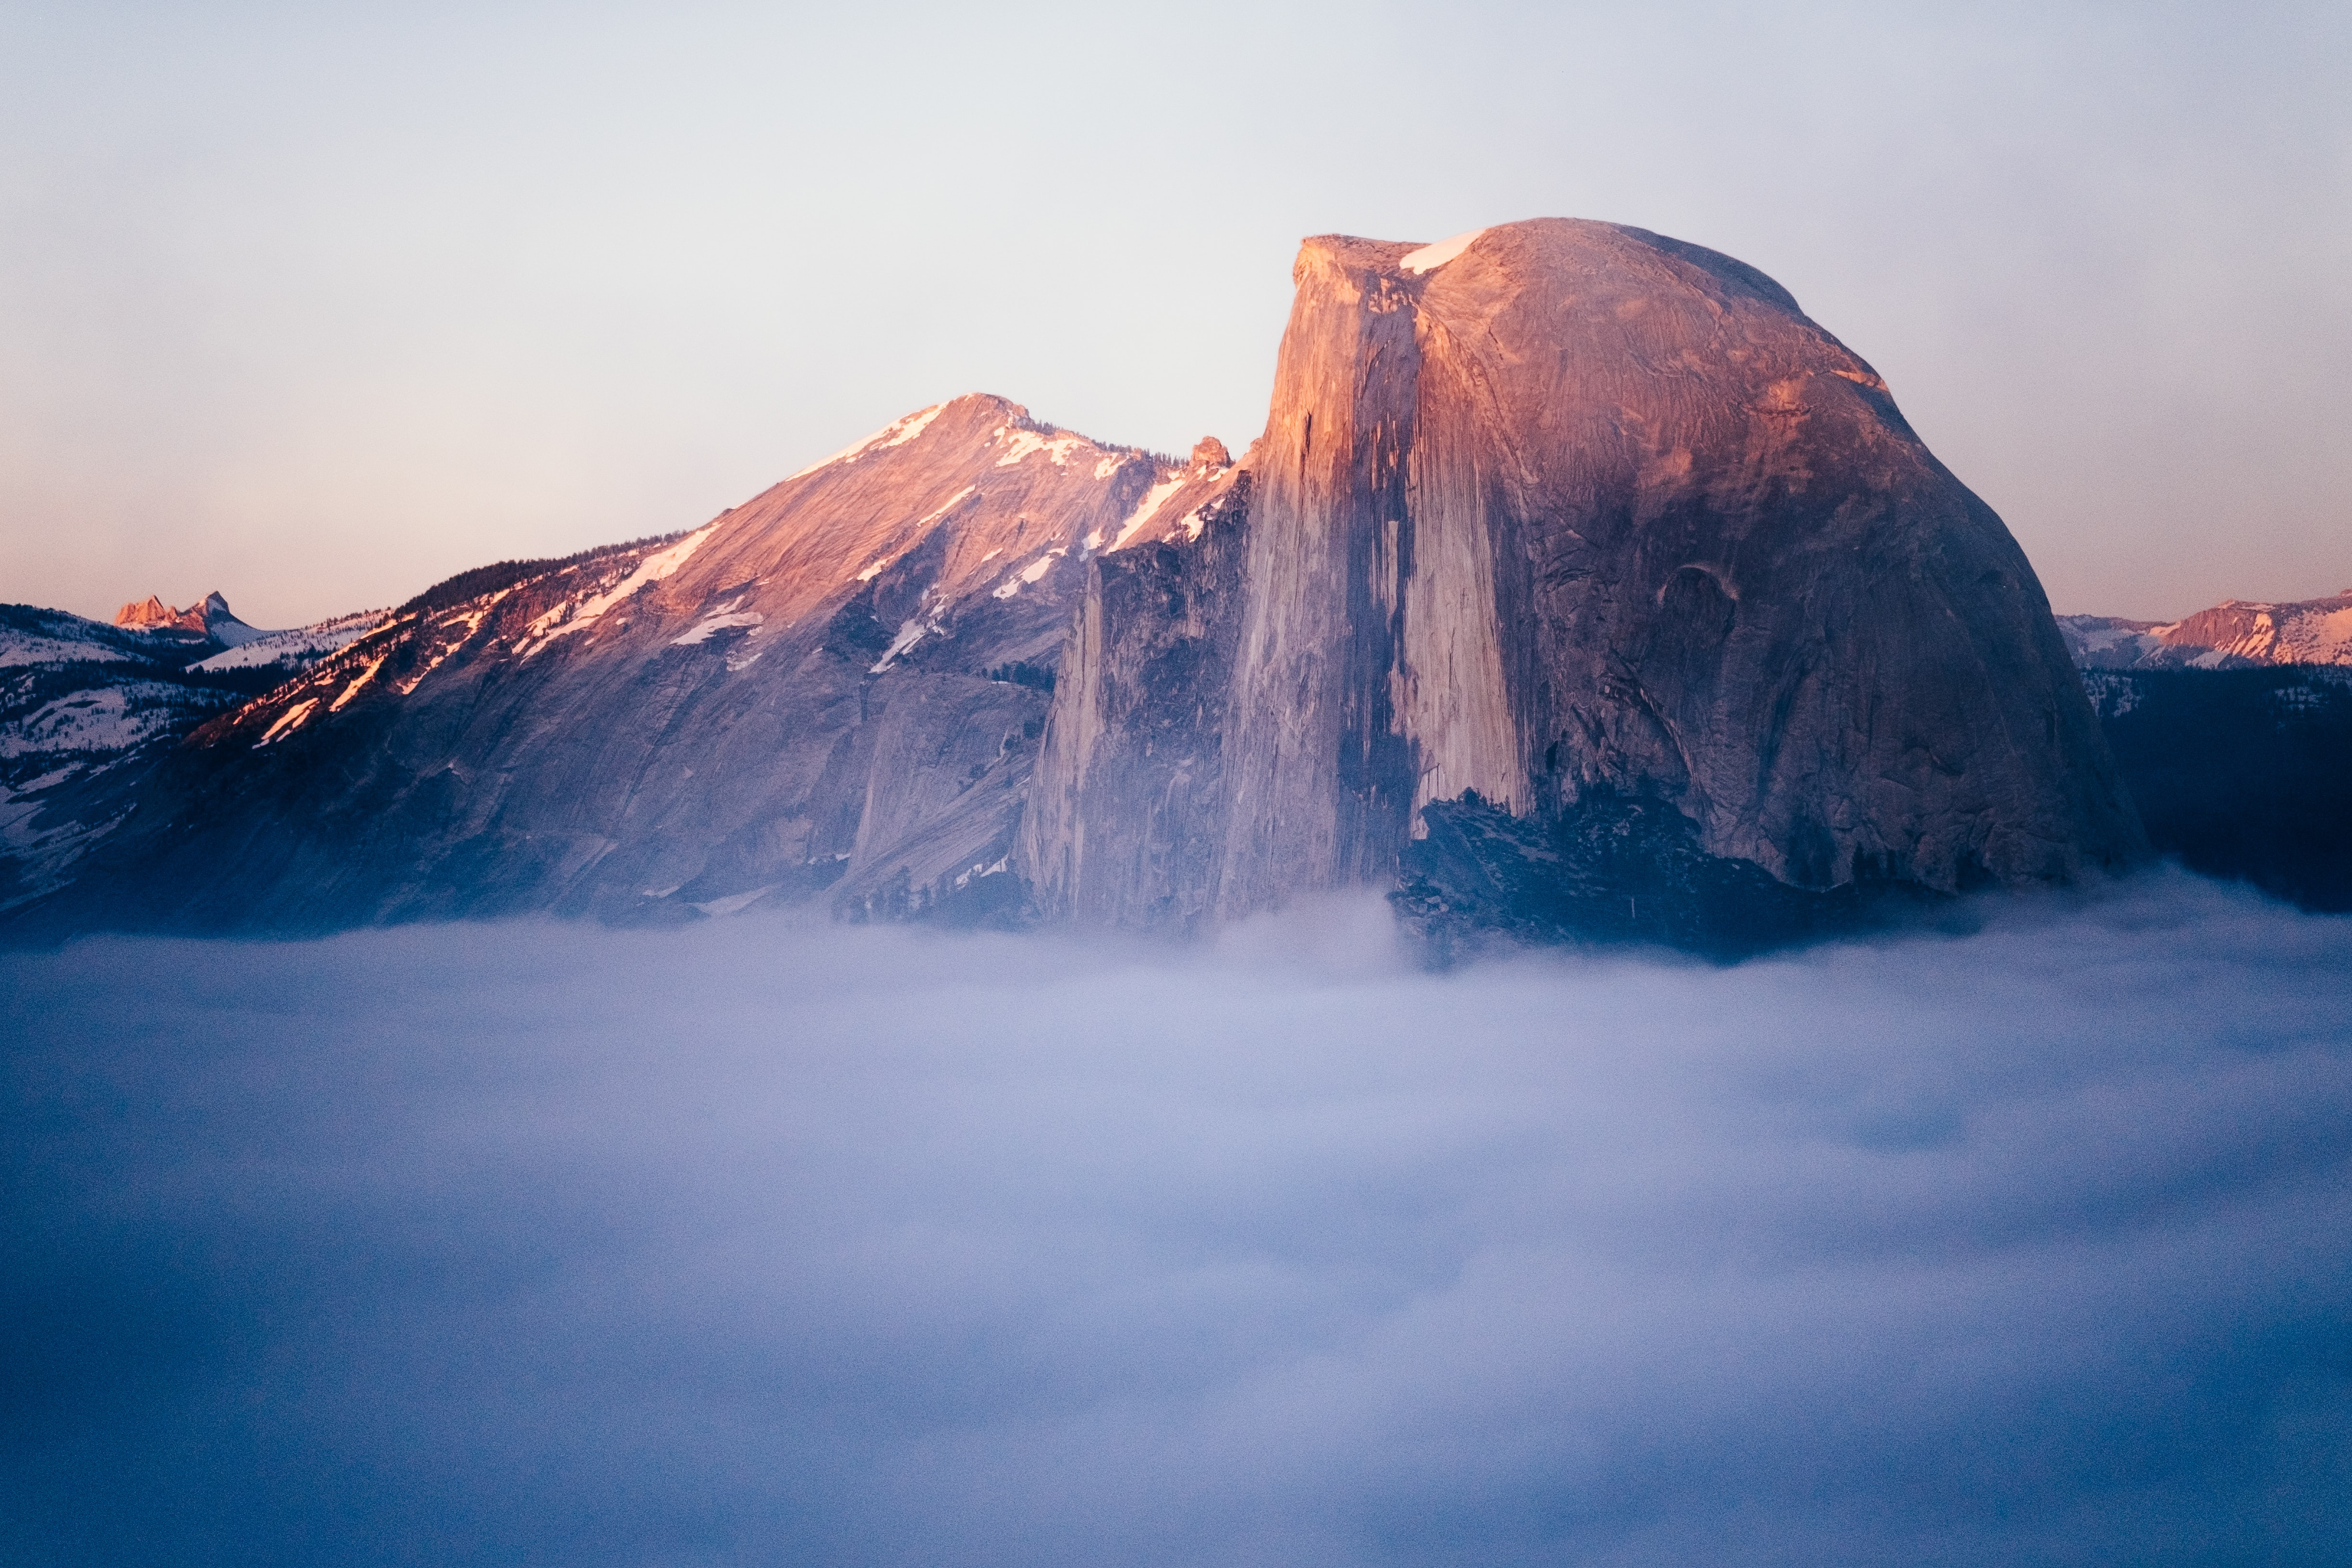 Fog covers the ground of rocky mountain cliffs Yosemite